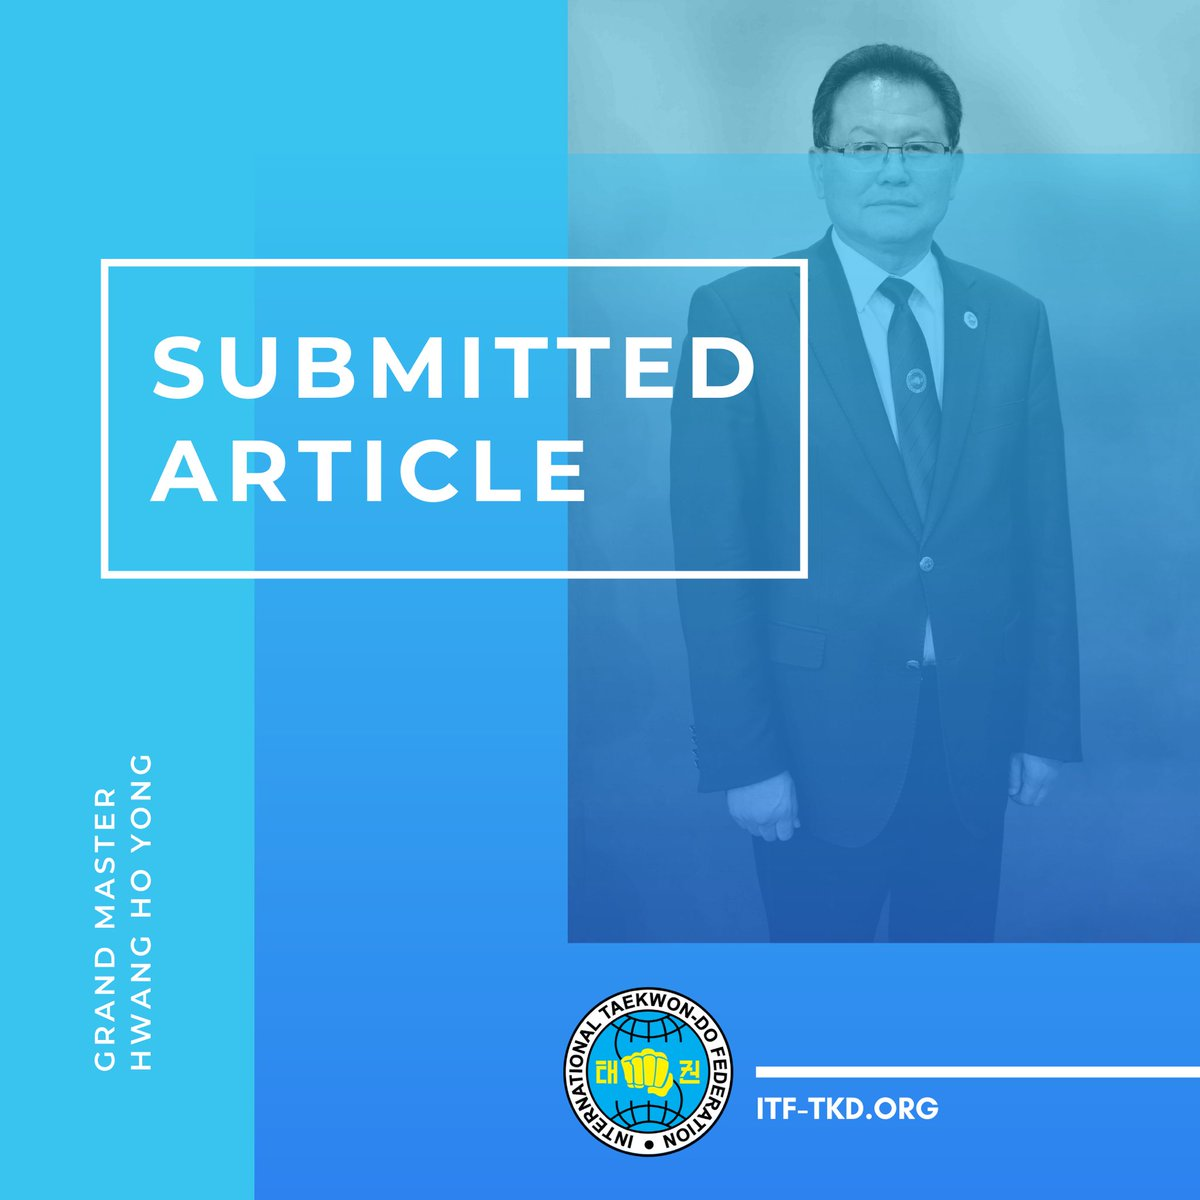 ARTICLE BY: ITF Senior Vice President, Chairman of the Technical & Education Committee, Grand Master Hwang Ho Yong  TITLE:  60th Birthday Interview (2016)  Read more by visiting: http://instagram.com/p/CA8nNV8MWxp/  #ITF #TAEKWONDO #SUBMITTEDARTICLE #GRANDMASTERpic.twitter.com/KzuJahCABB